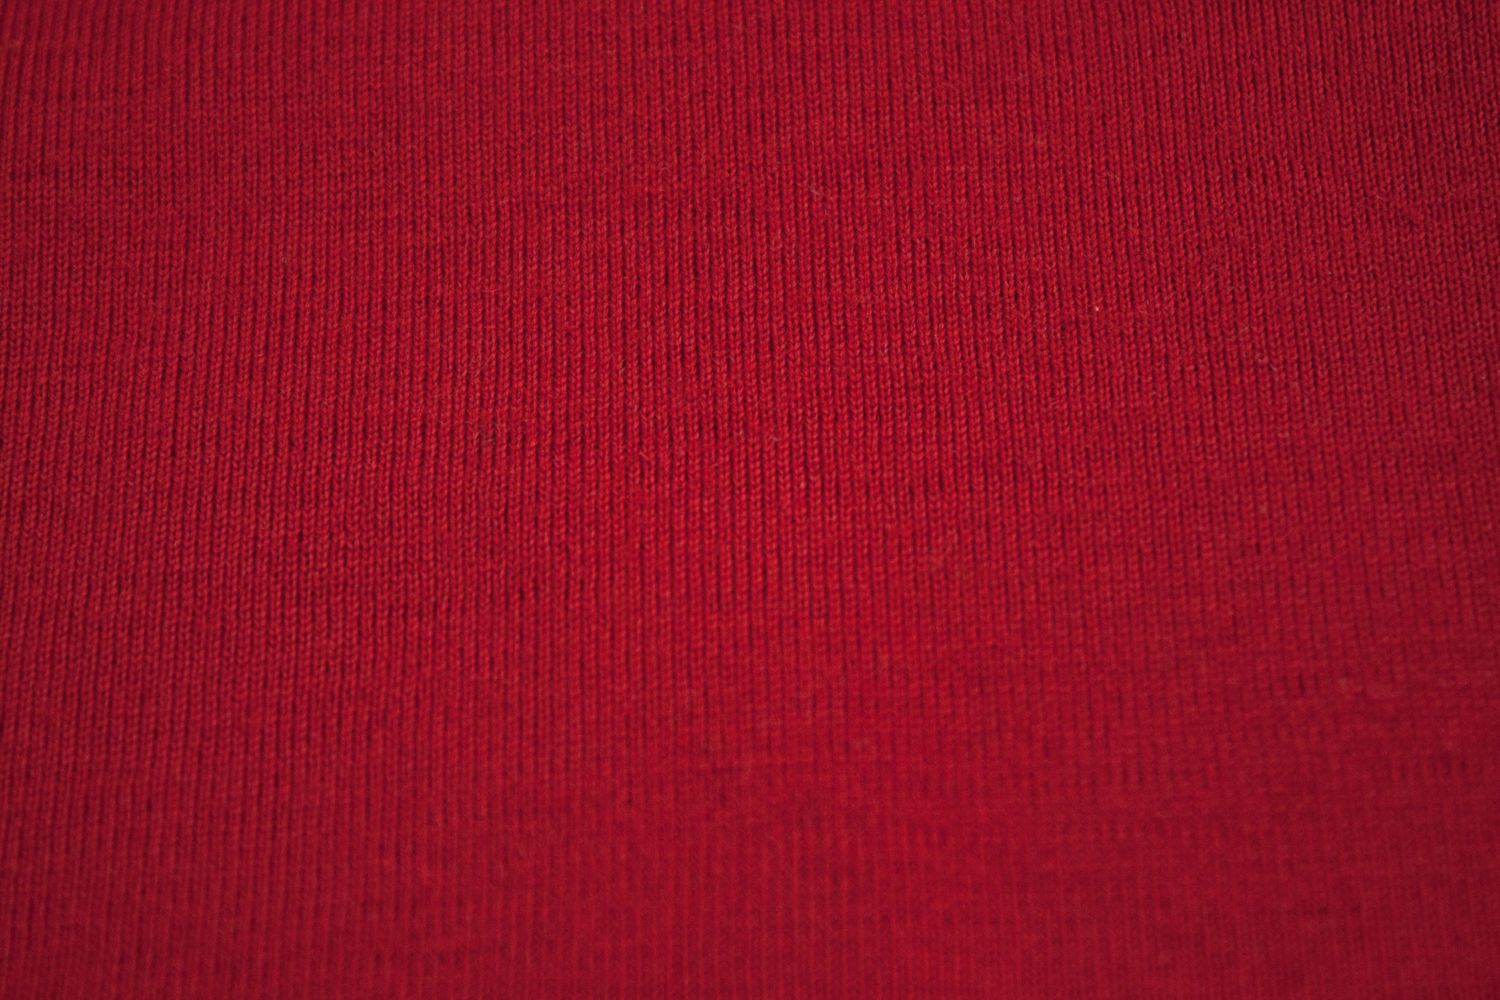 PAUL & SHARK Yachting Men's Wool Crew Neck Red Jumper, S - secondfirst